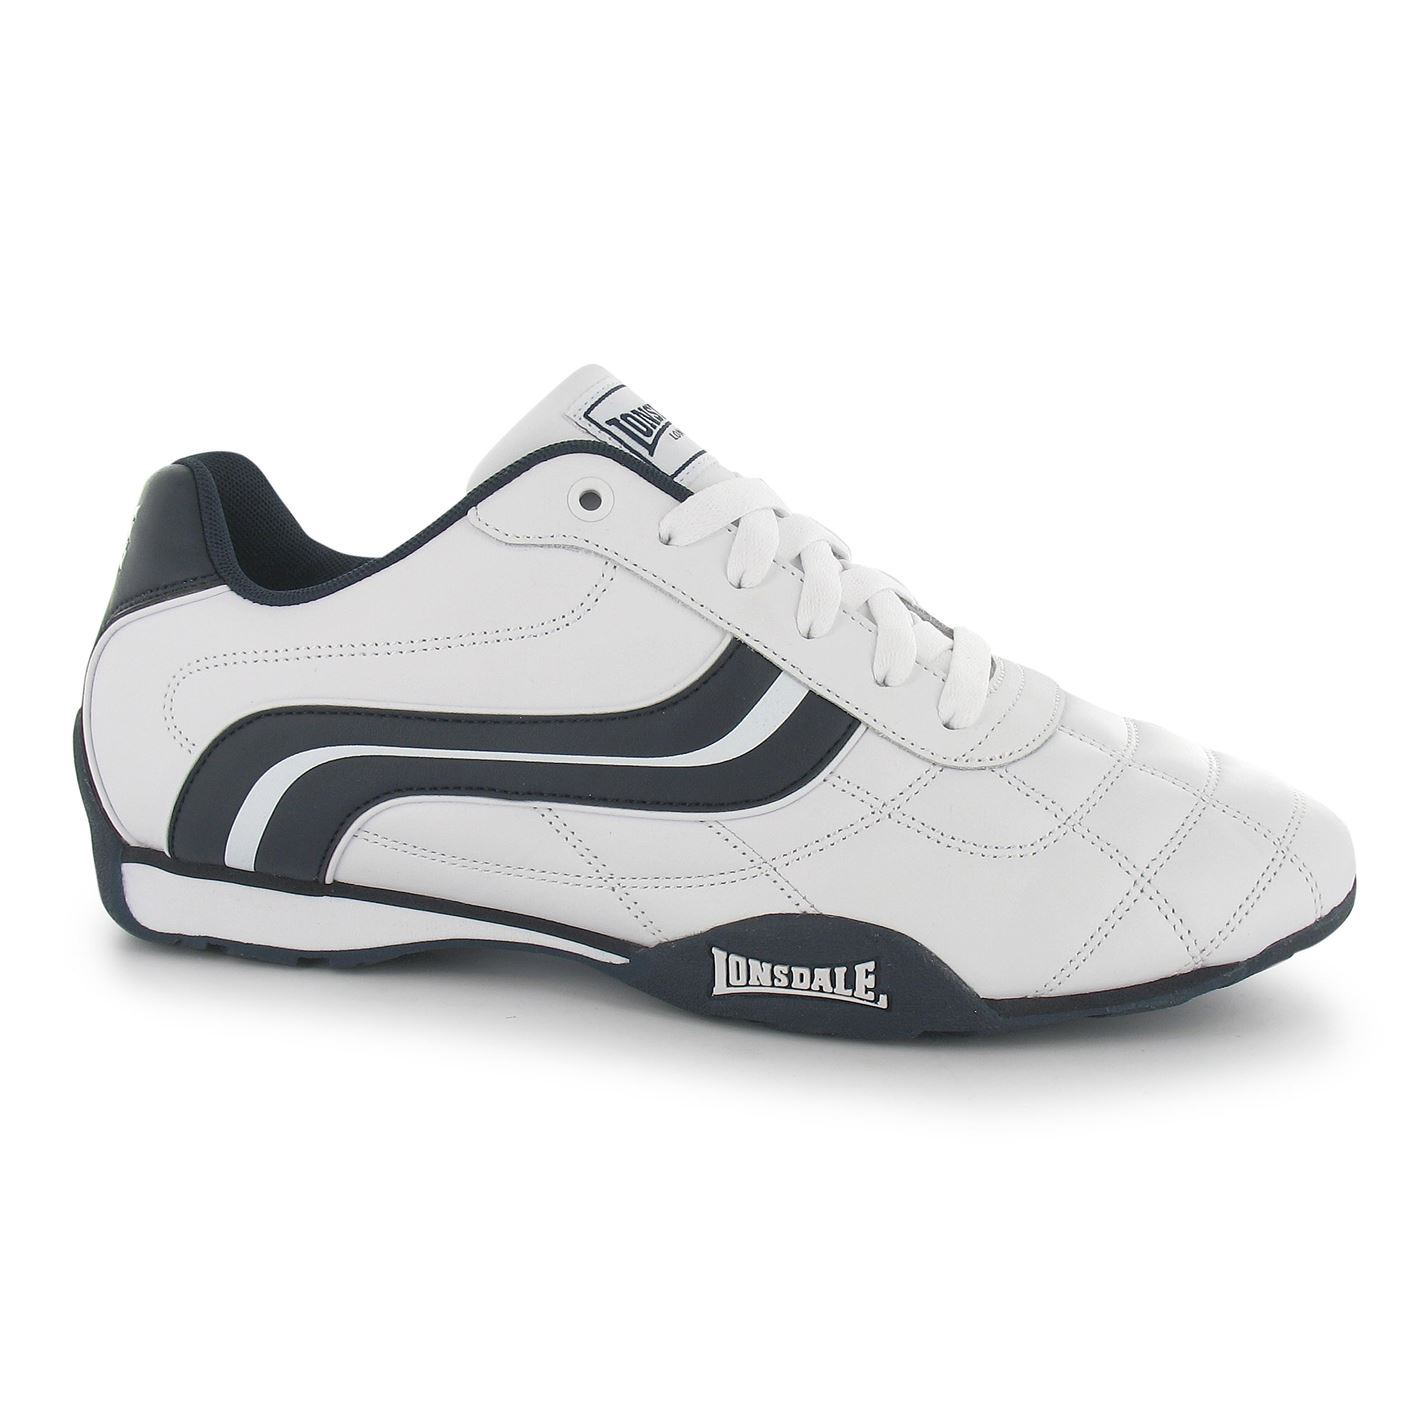 Lonsdale London Shoes Price